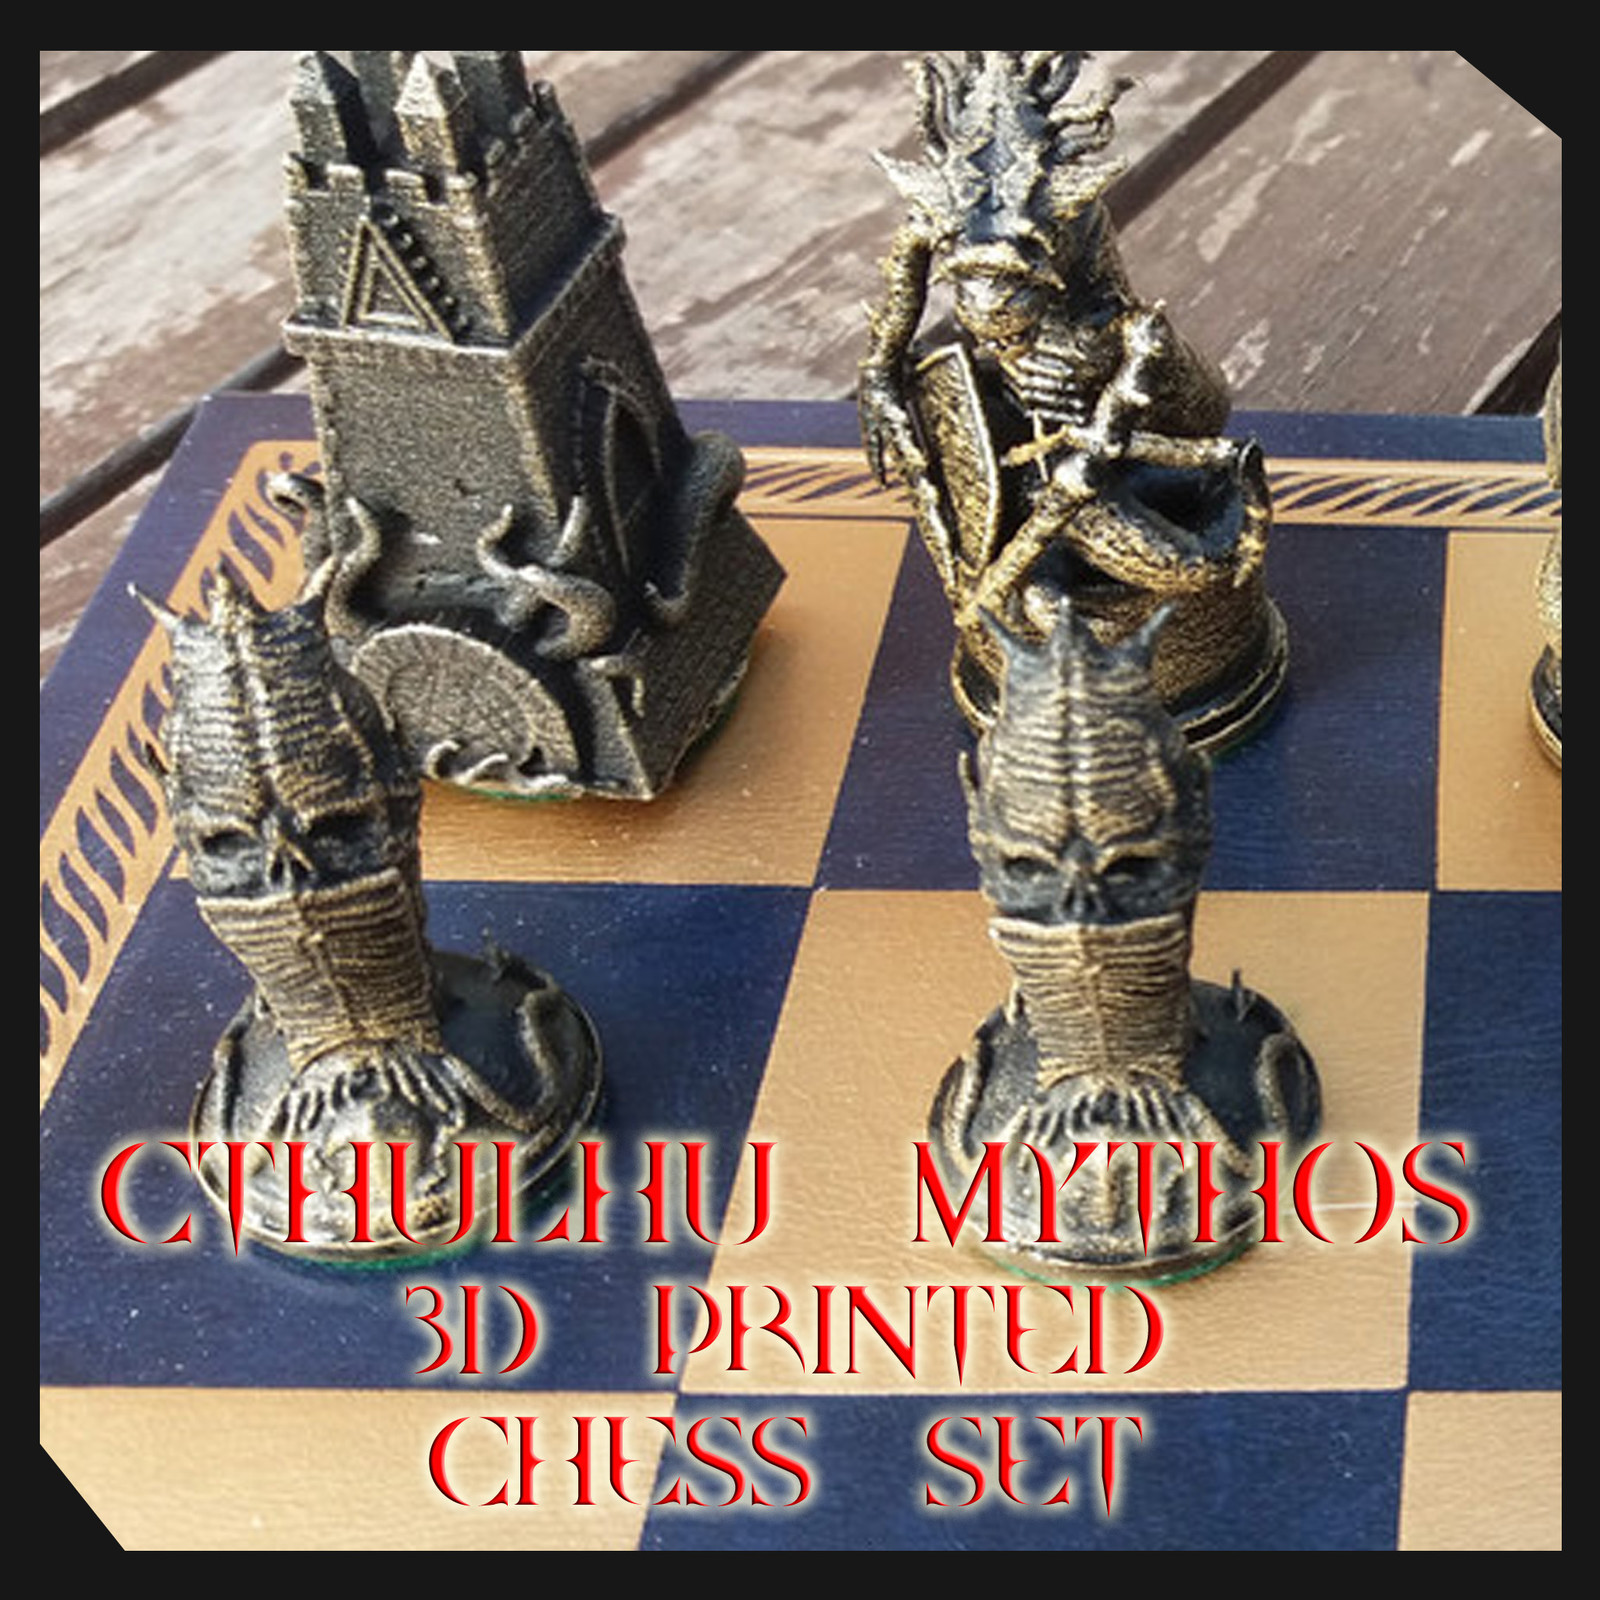 Cthulhu Chess Set 3D Printed and ready to order